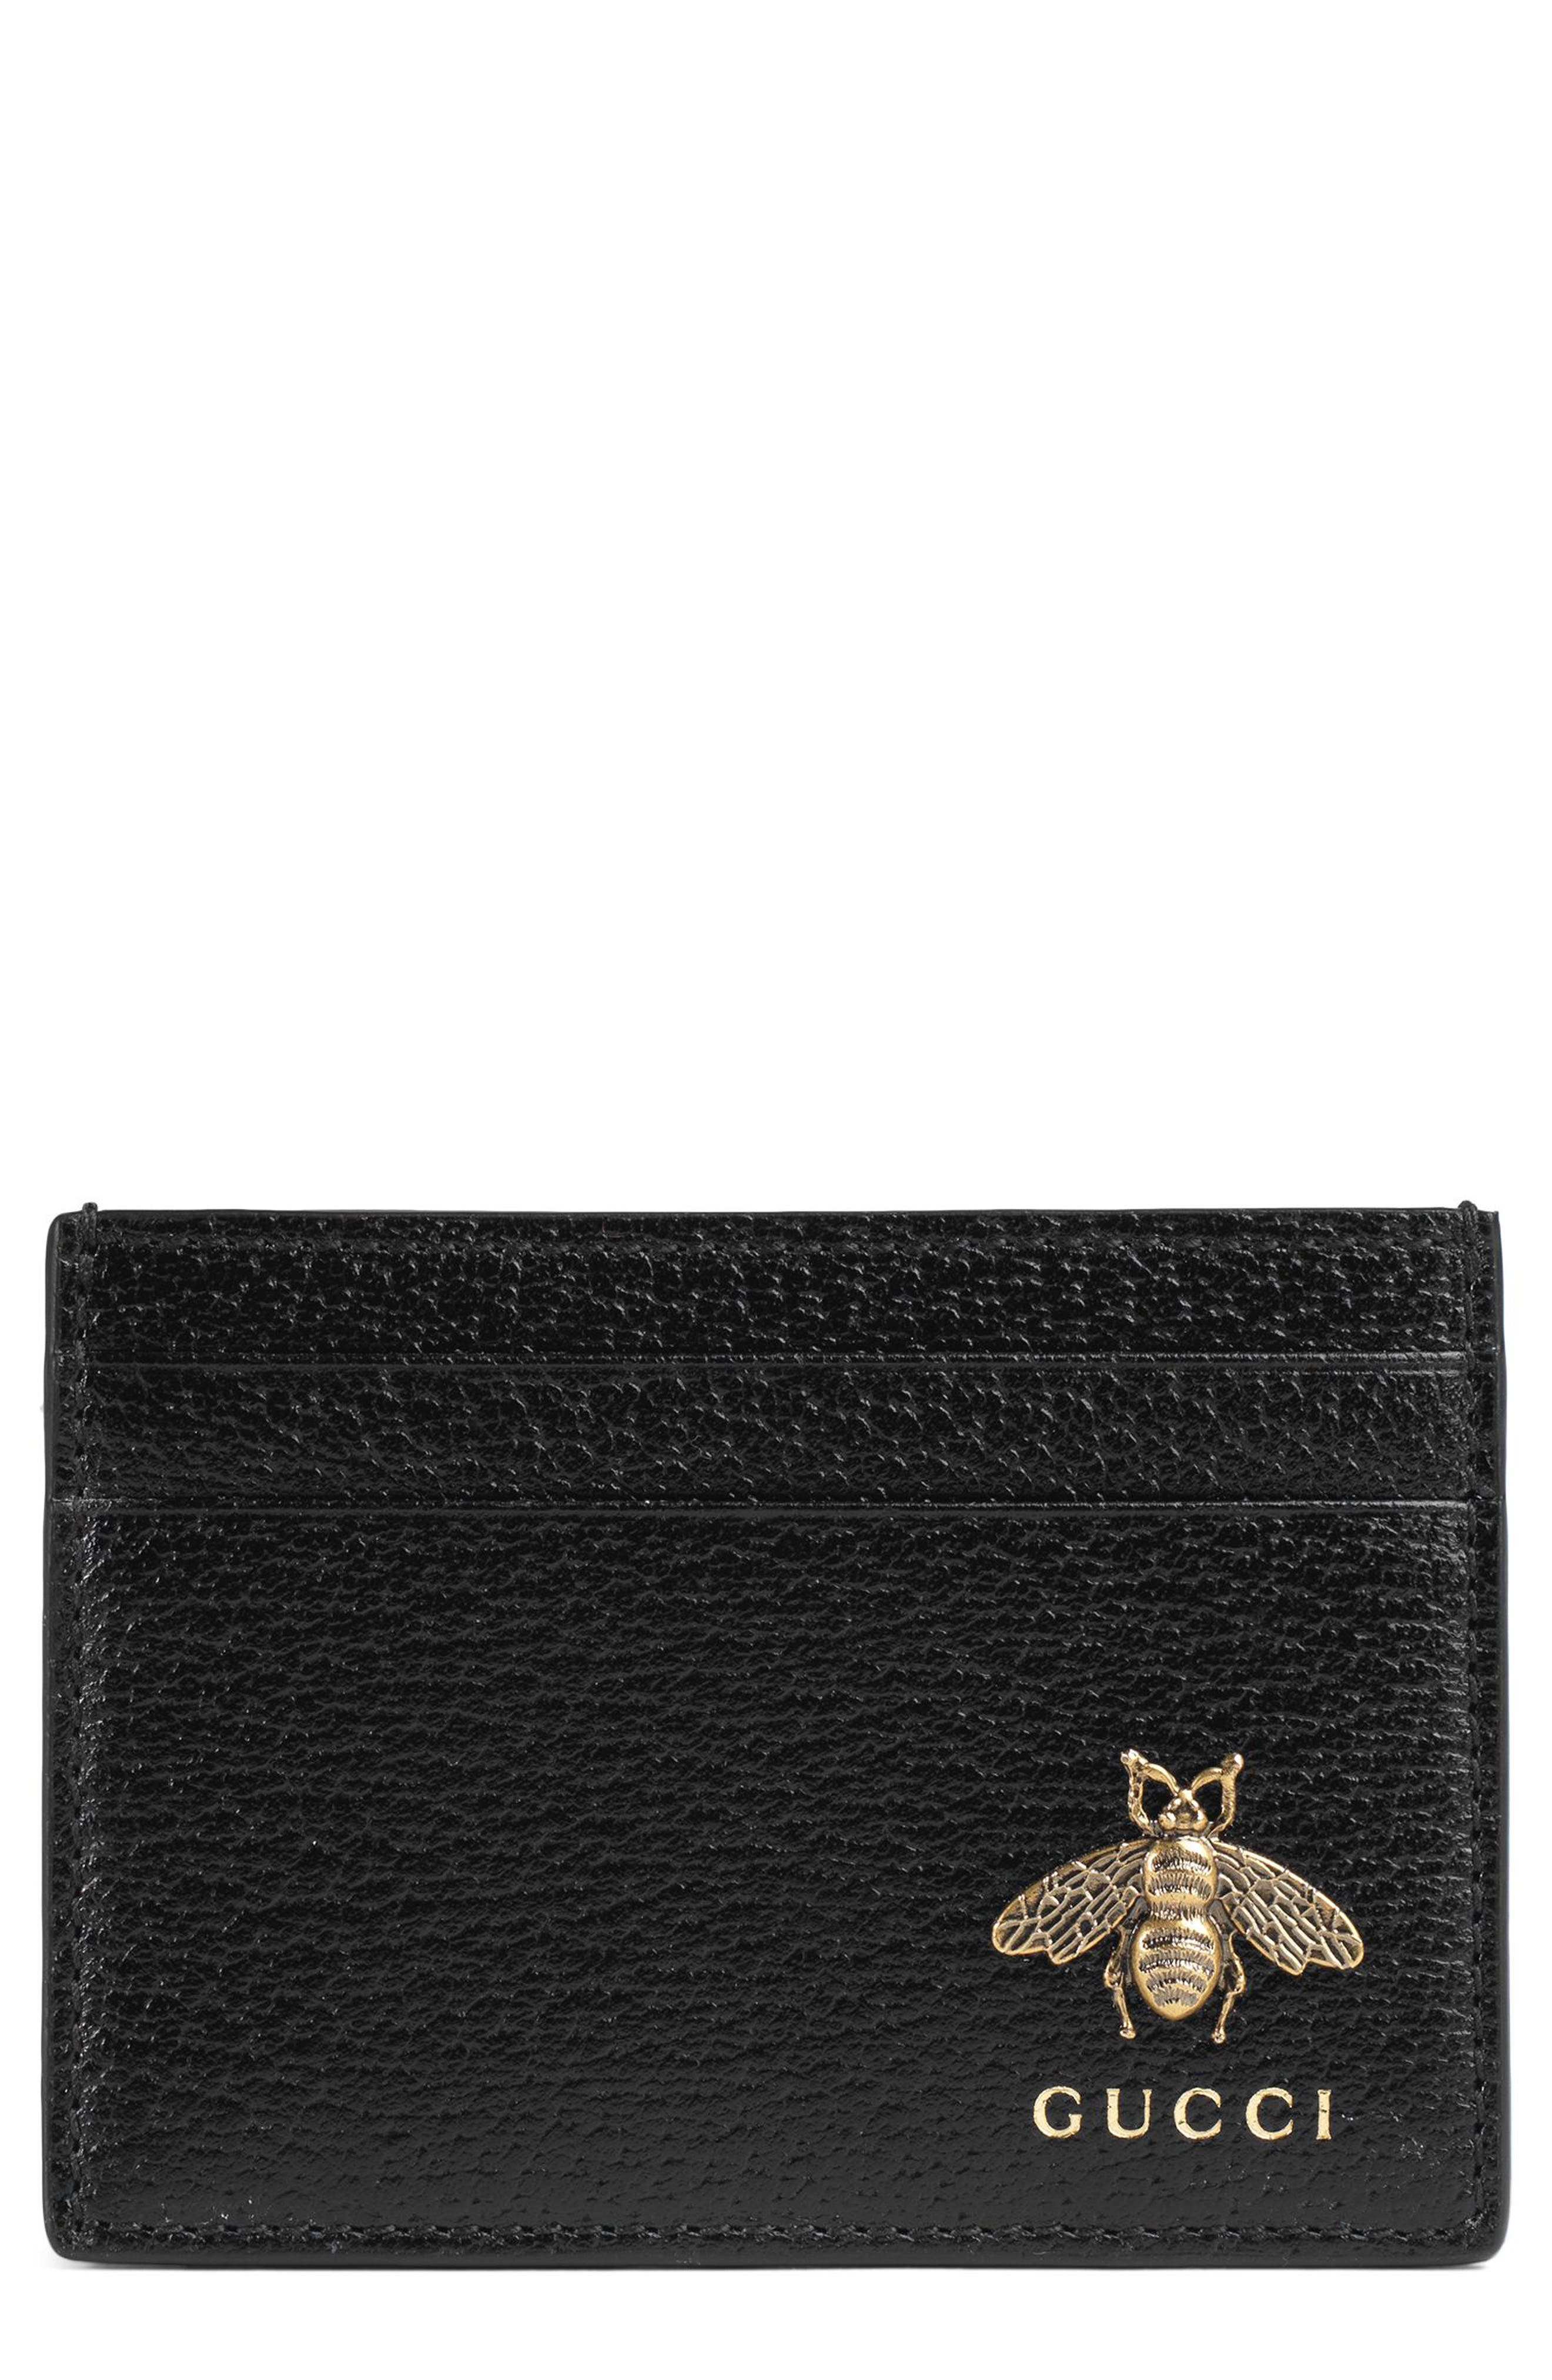 Bee Leather Card Case,                             Main thumbnail 1, color,                             Black